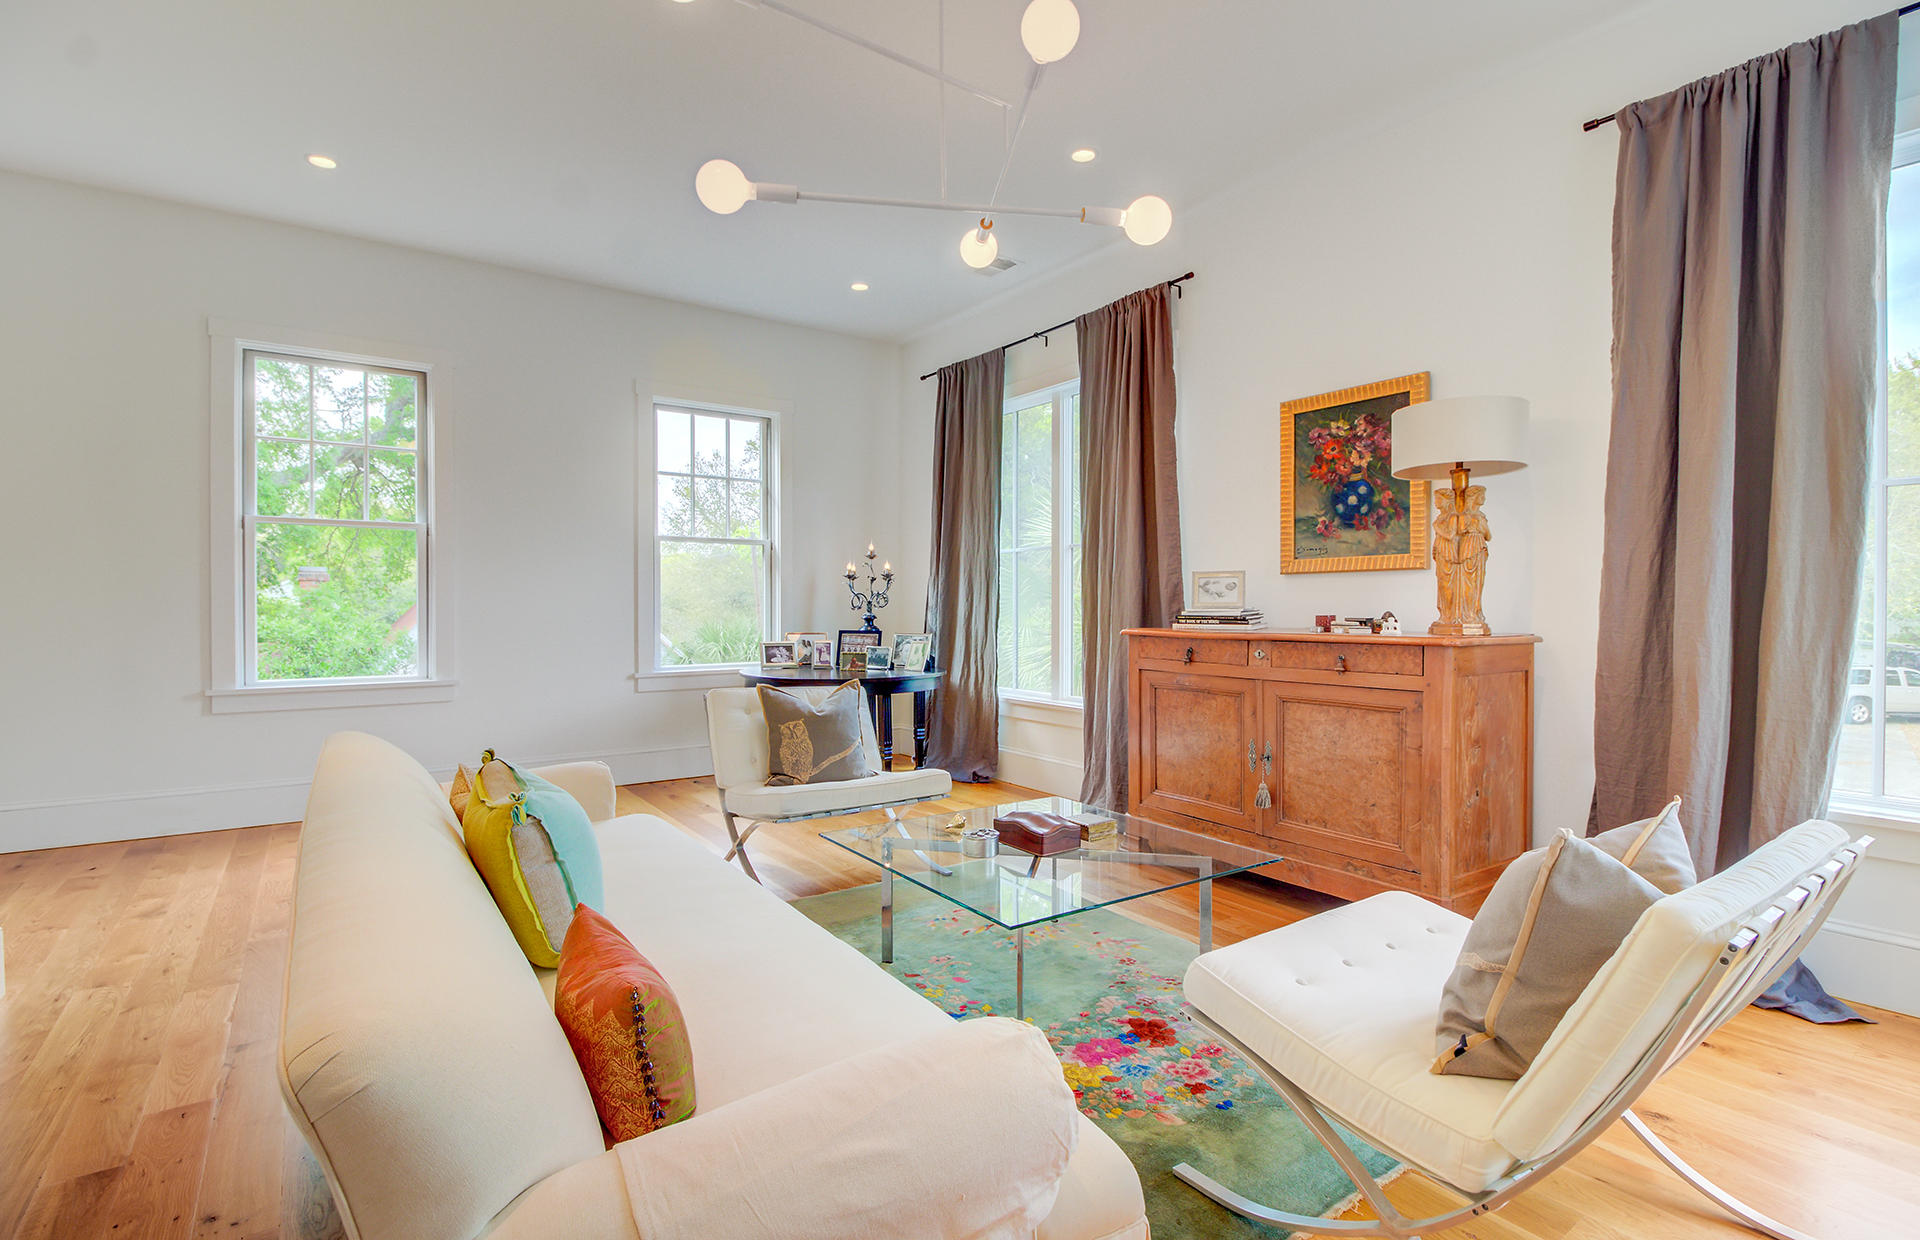 Old Mt Pleasant Homes For Sale - 209 Greenwich, Mount Pleasant, SC - 67